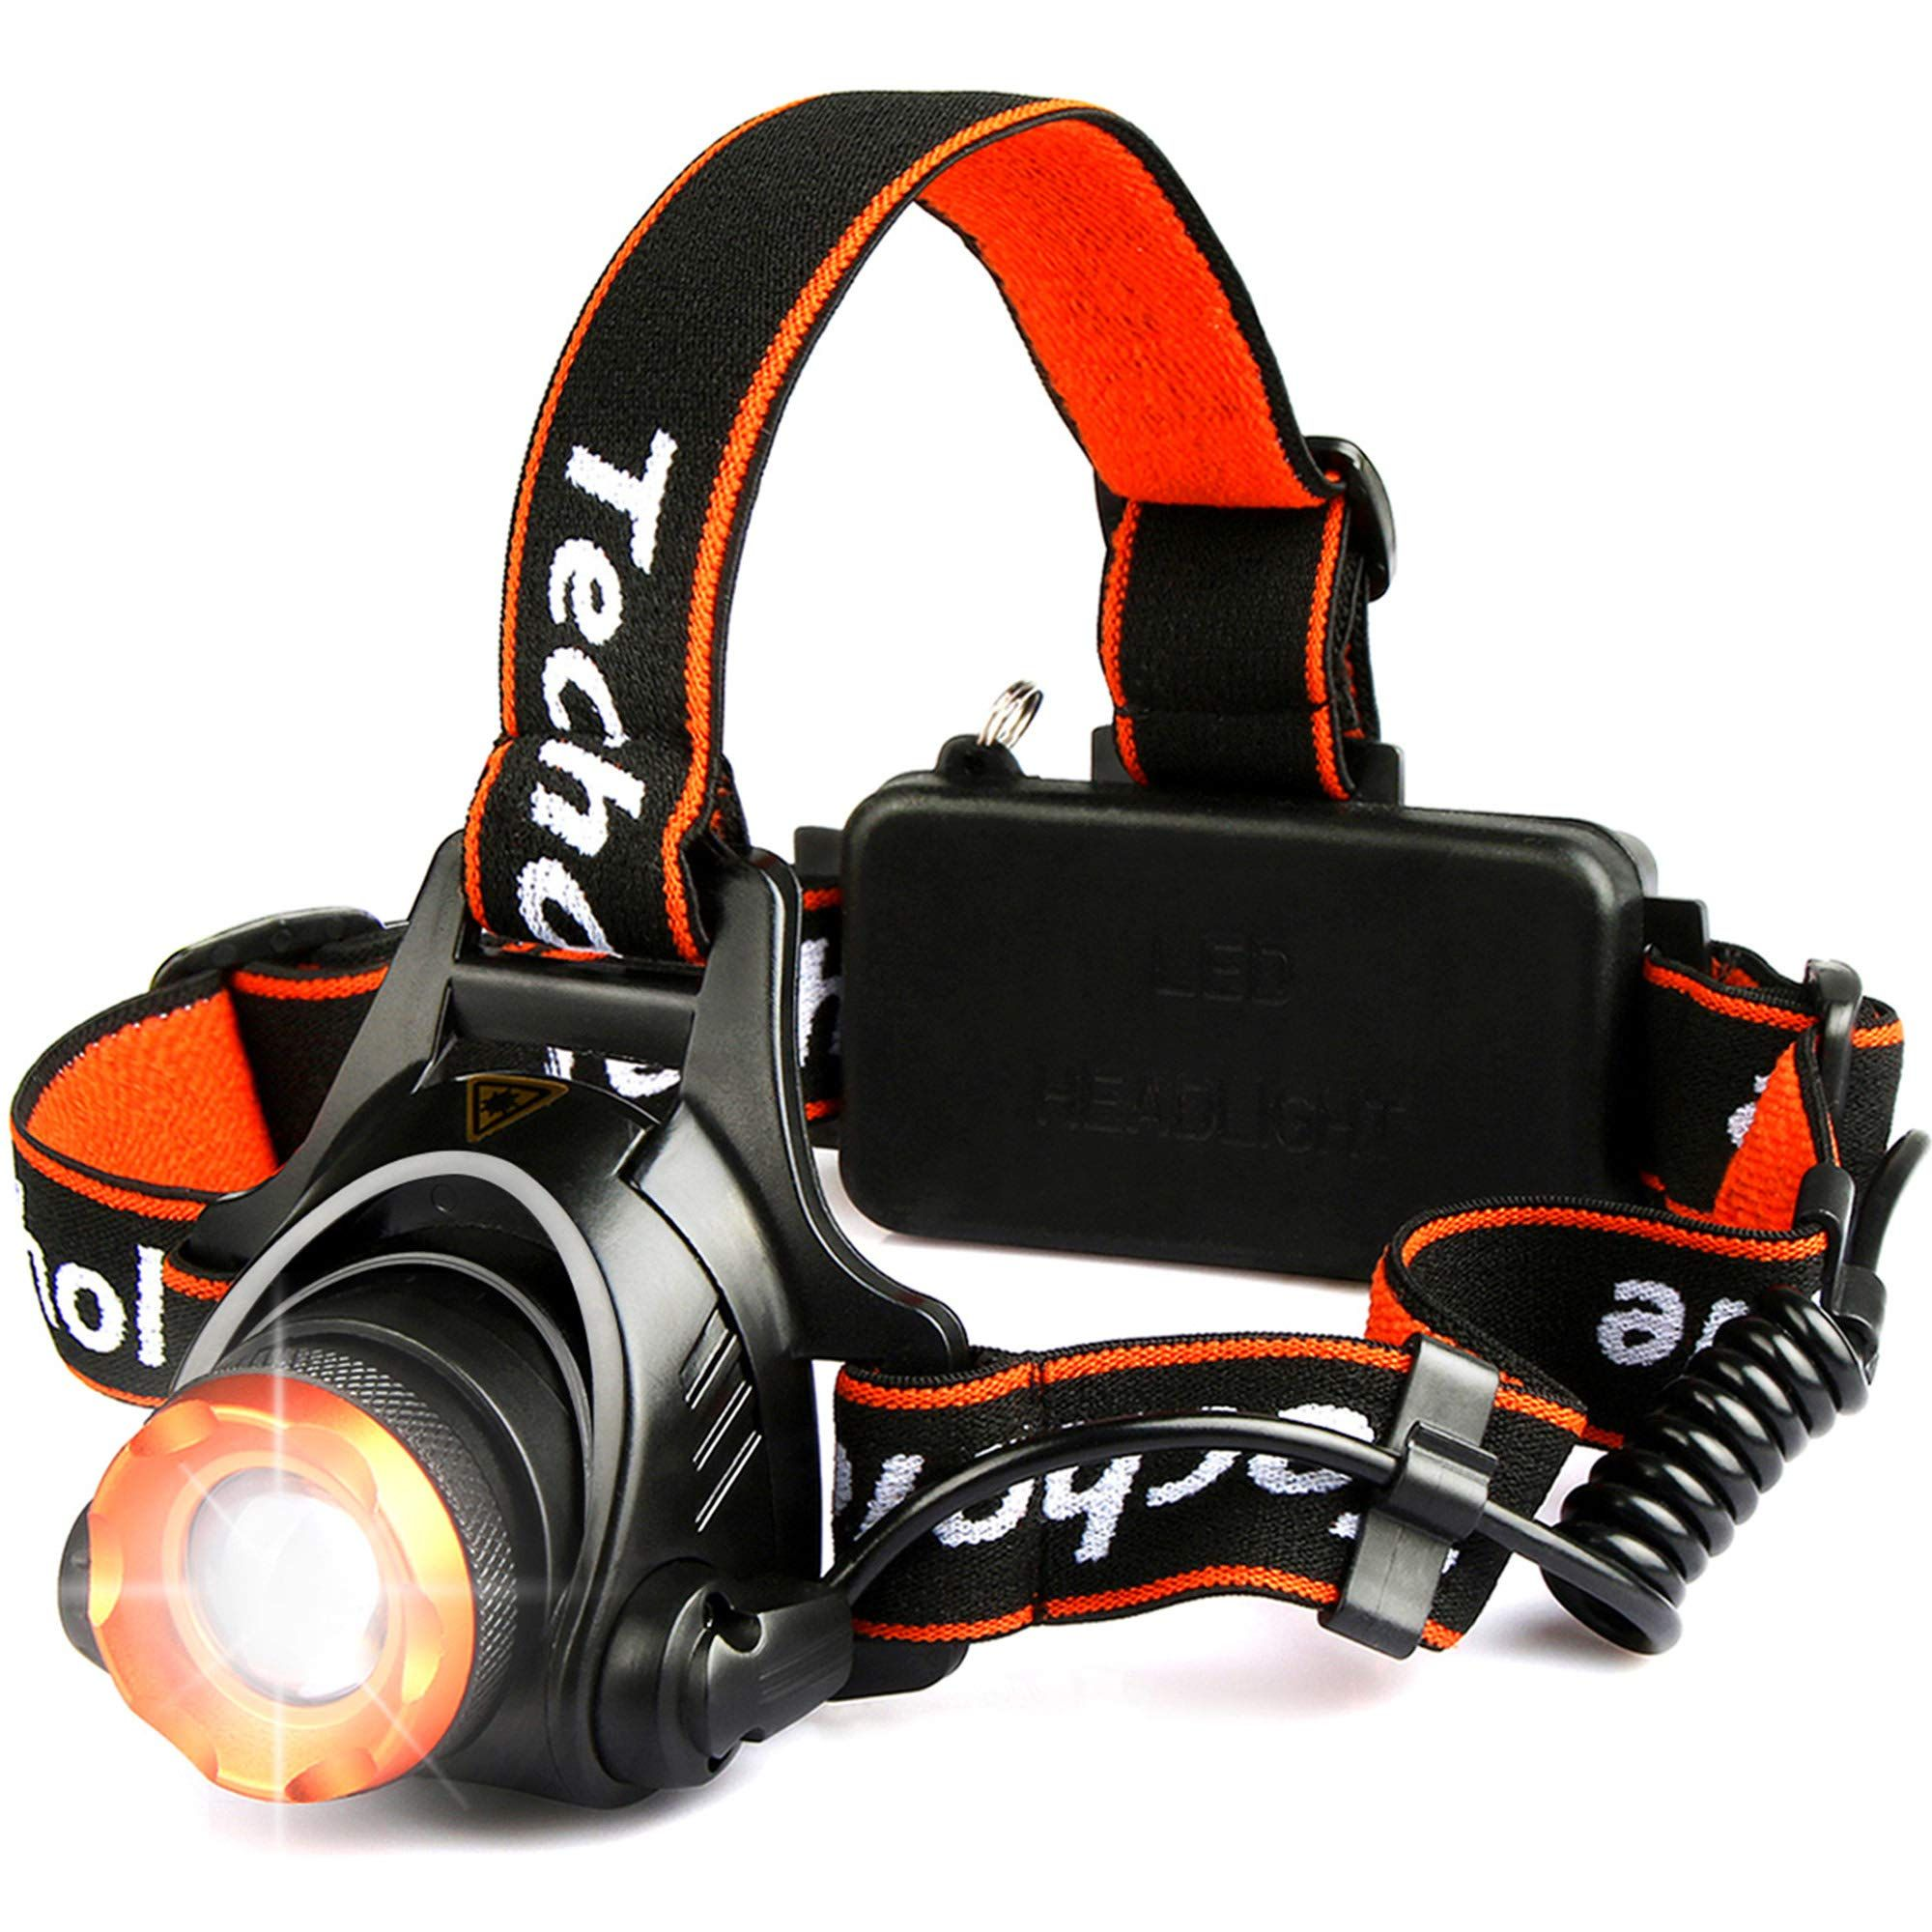 Techole Headlamp Flashlight 2000 Lumen Zoomable And Rechargeable Led Head Lamp Up To 500ft Light Beam With 3 Modes Adjust In 2020 Usb Rechargeable Headlamp Flashlight